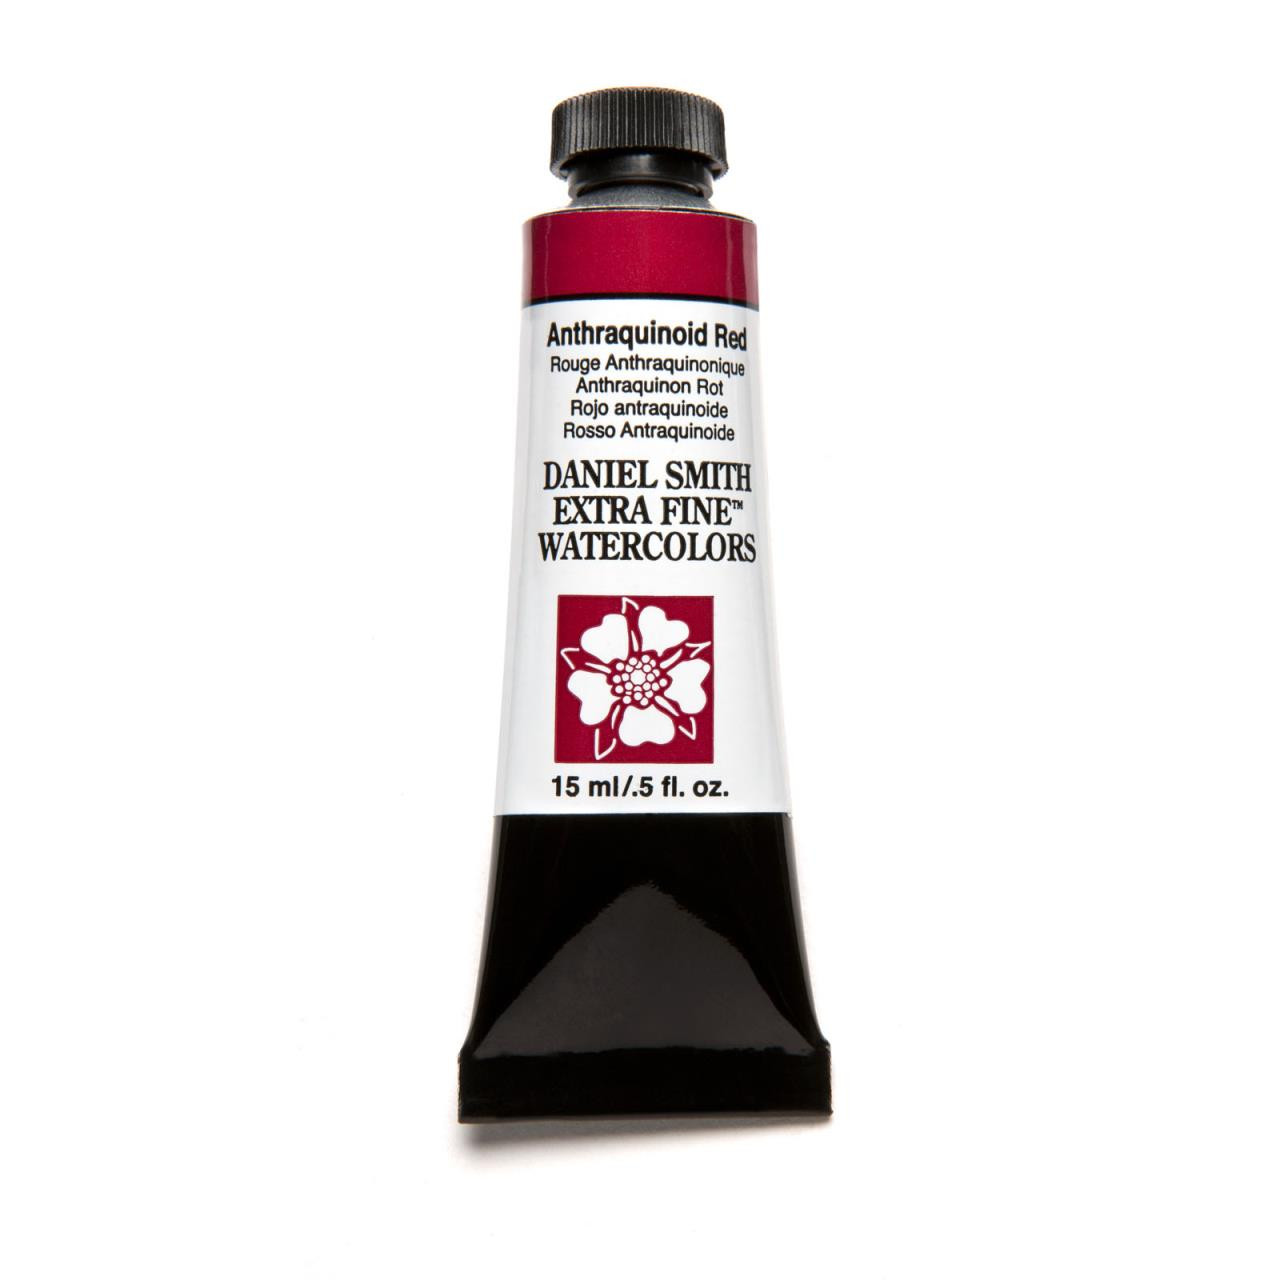 Anthraquinoid Red, DANIEL SMITH Extra Fine Watercolors 15ml Tubes -